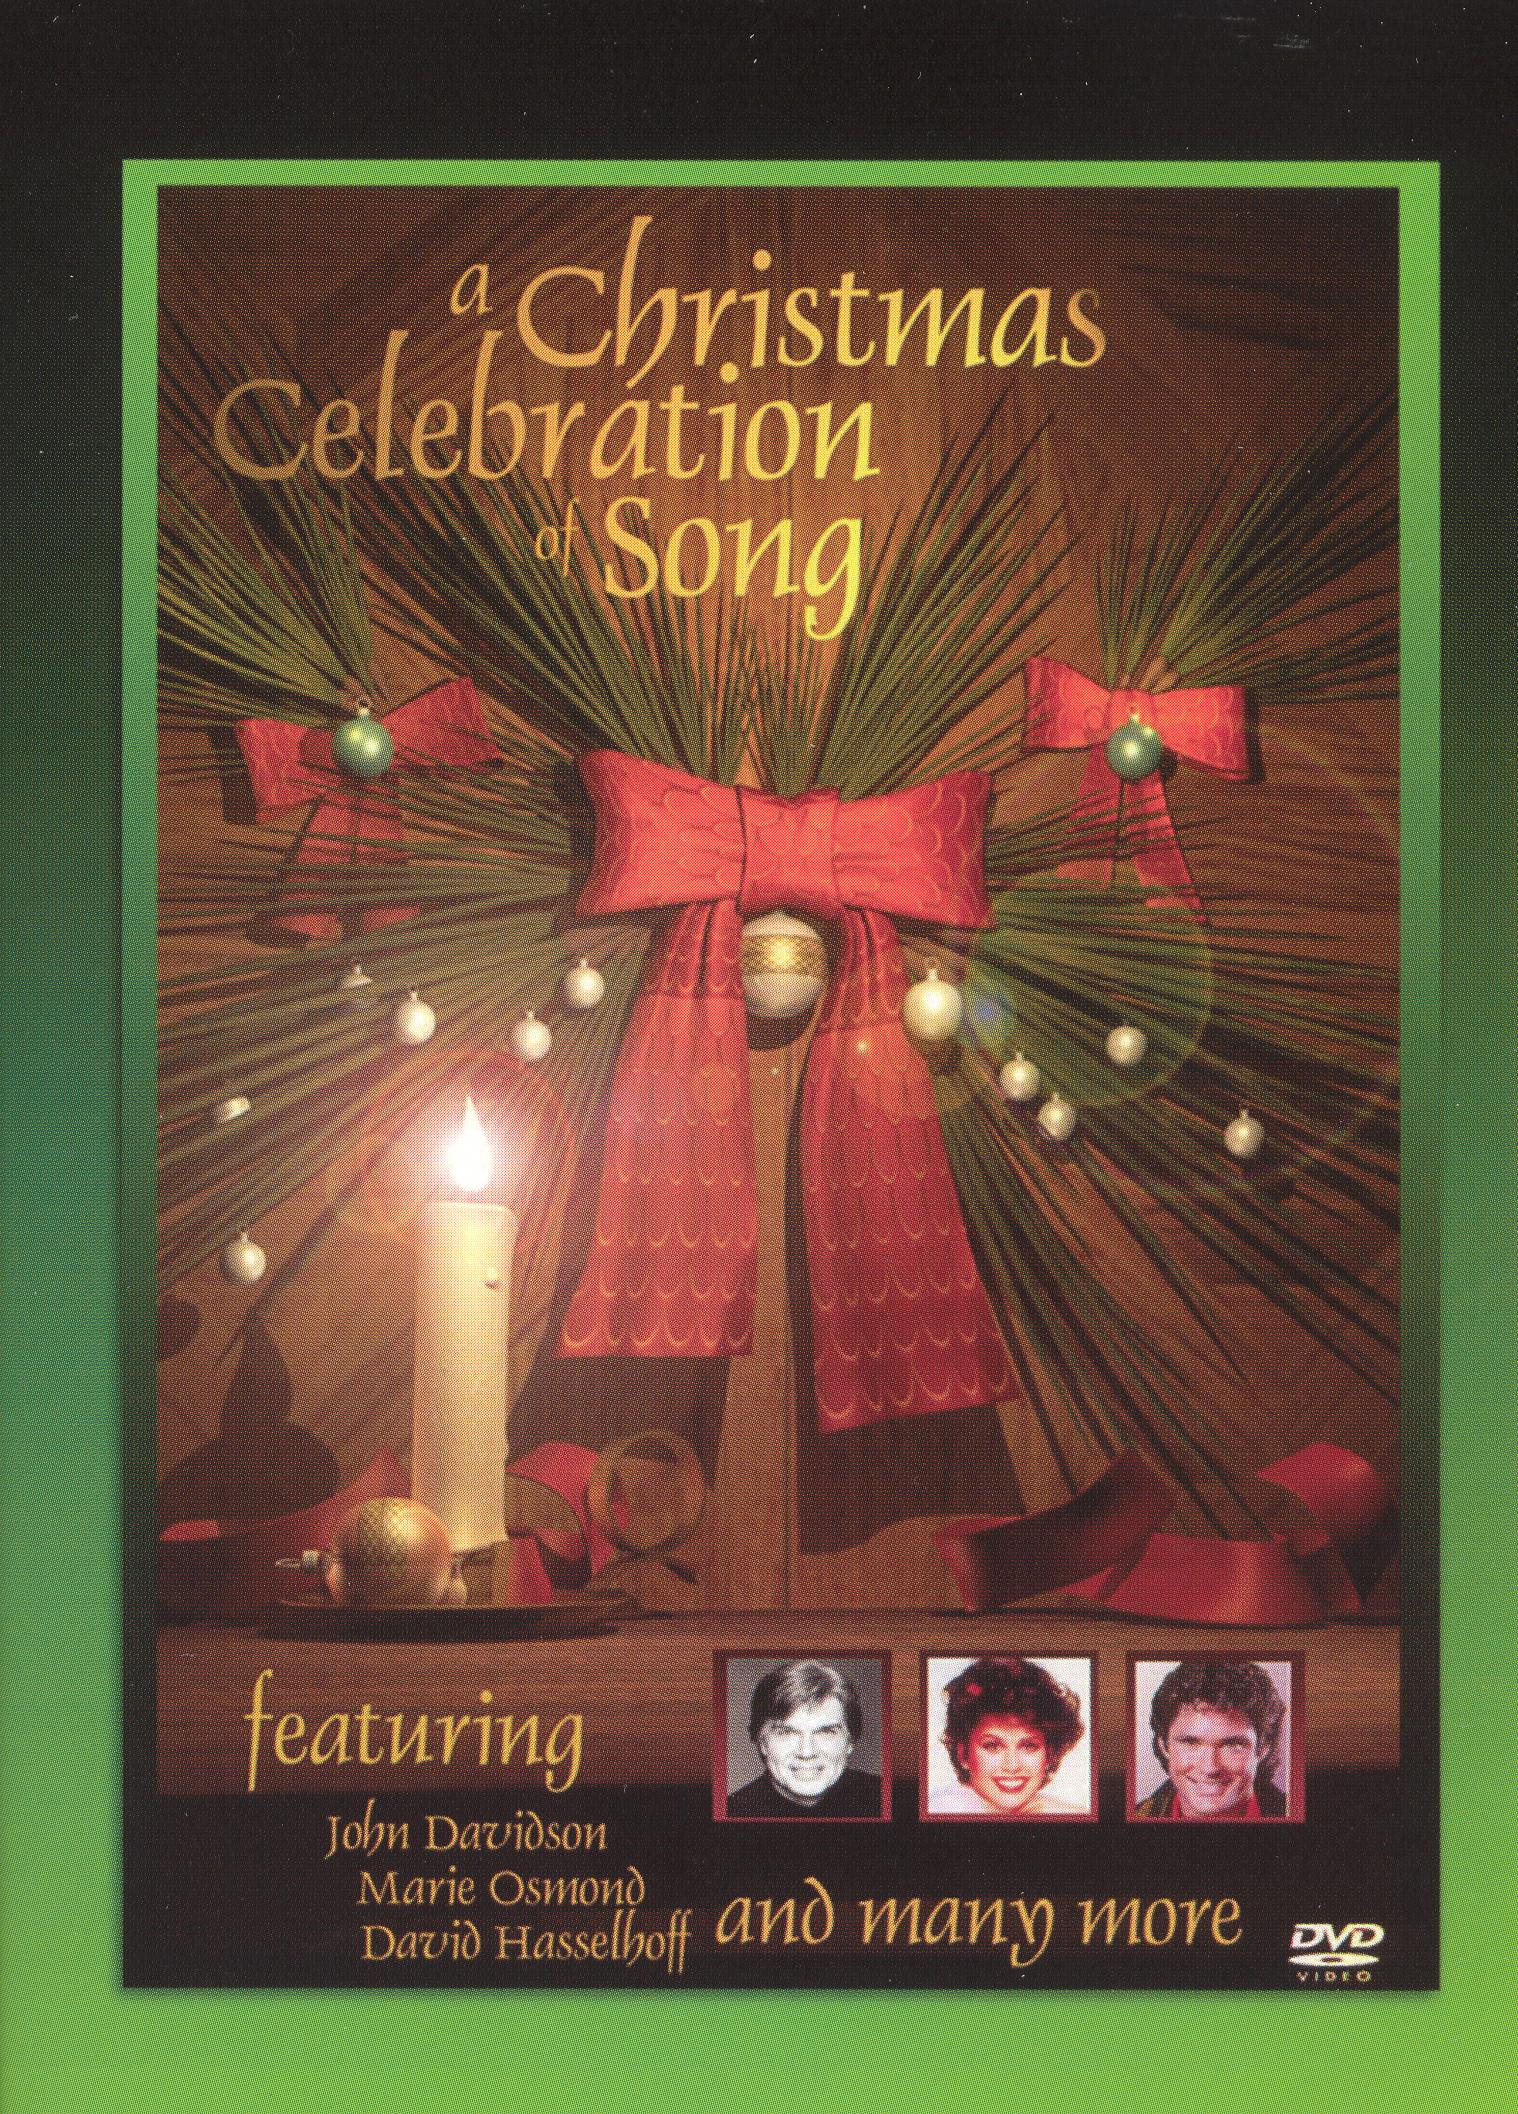 A Christmas Celebration of Song